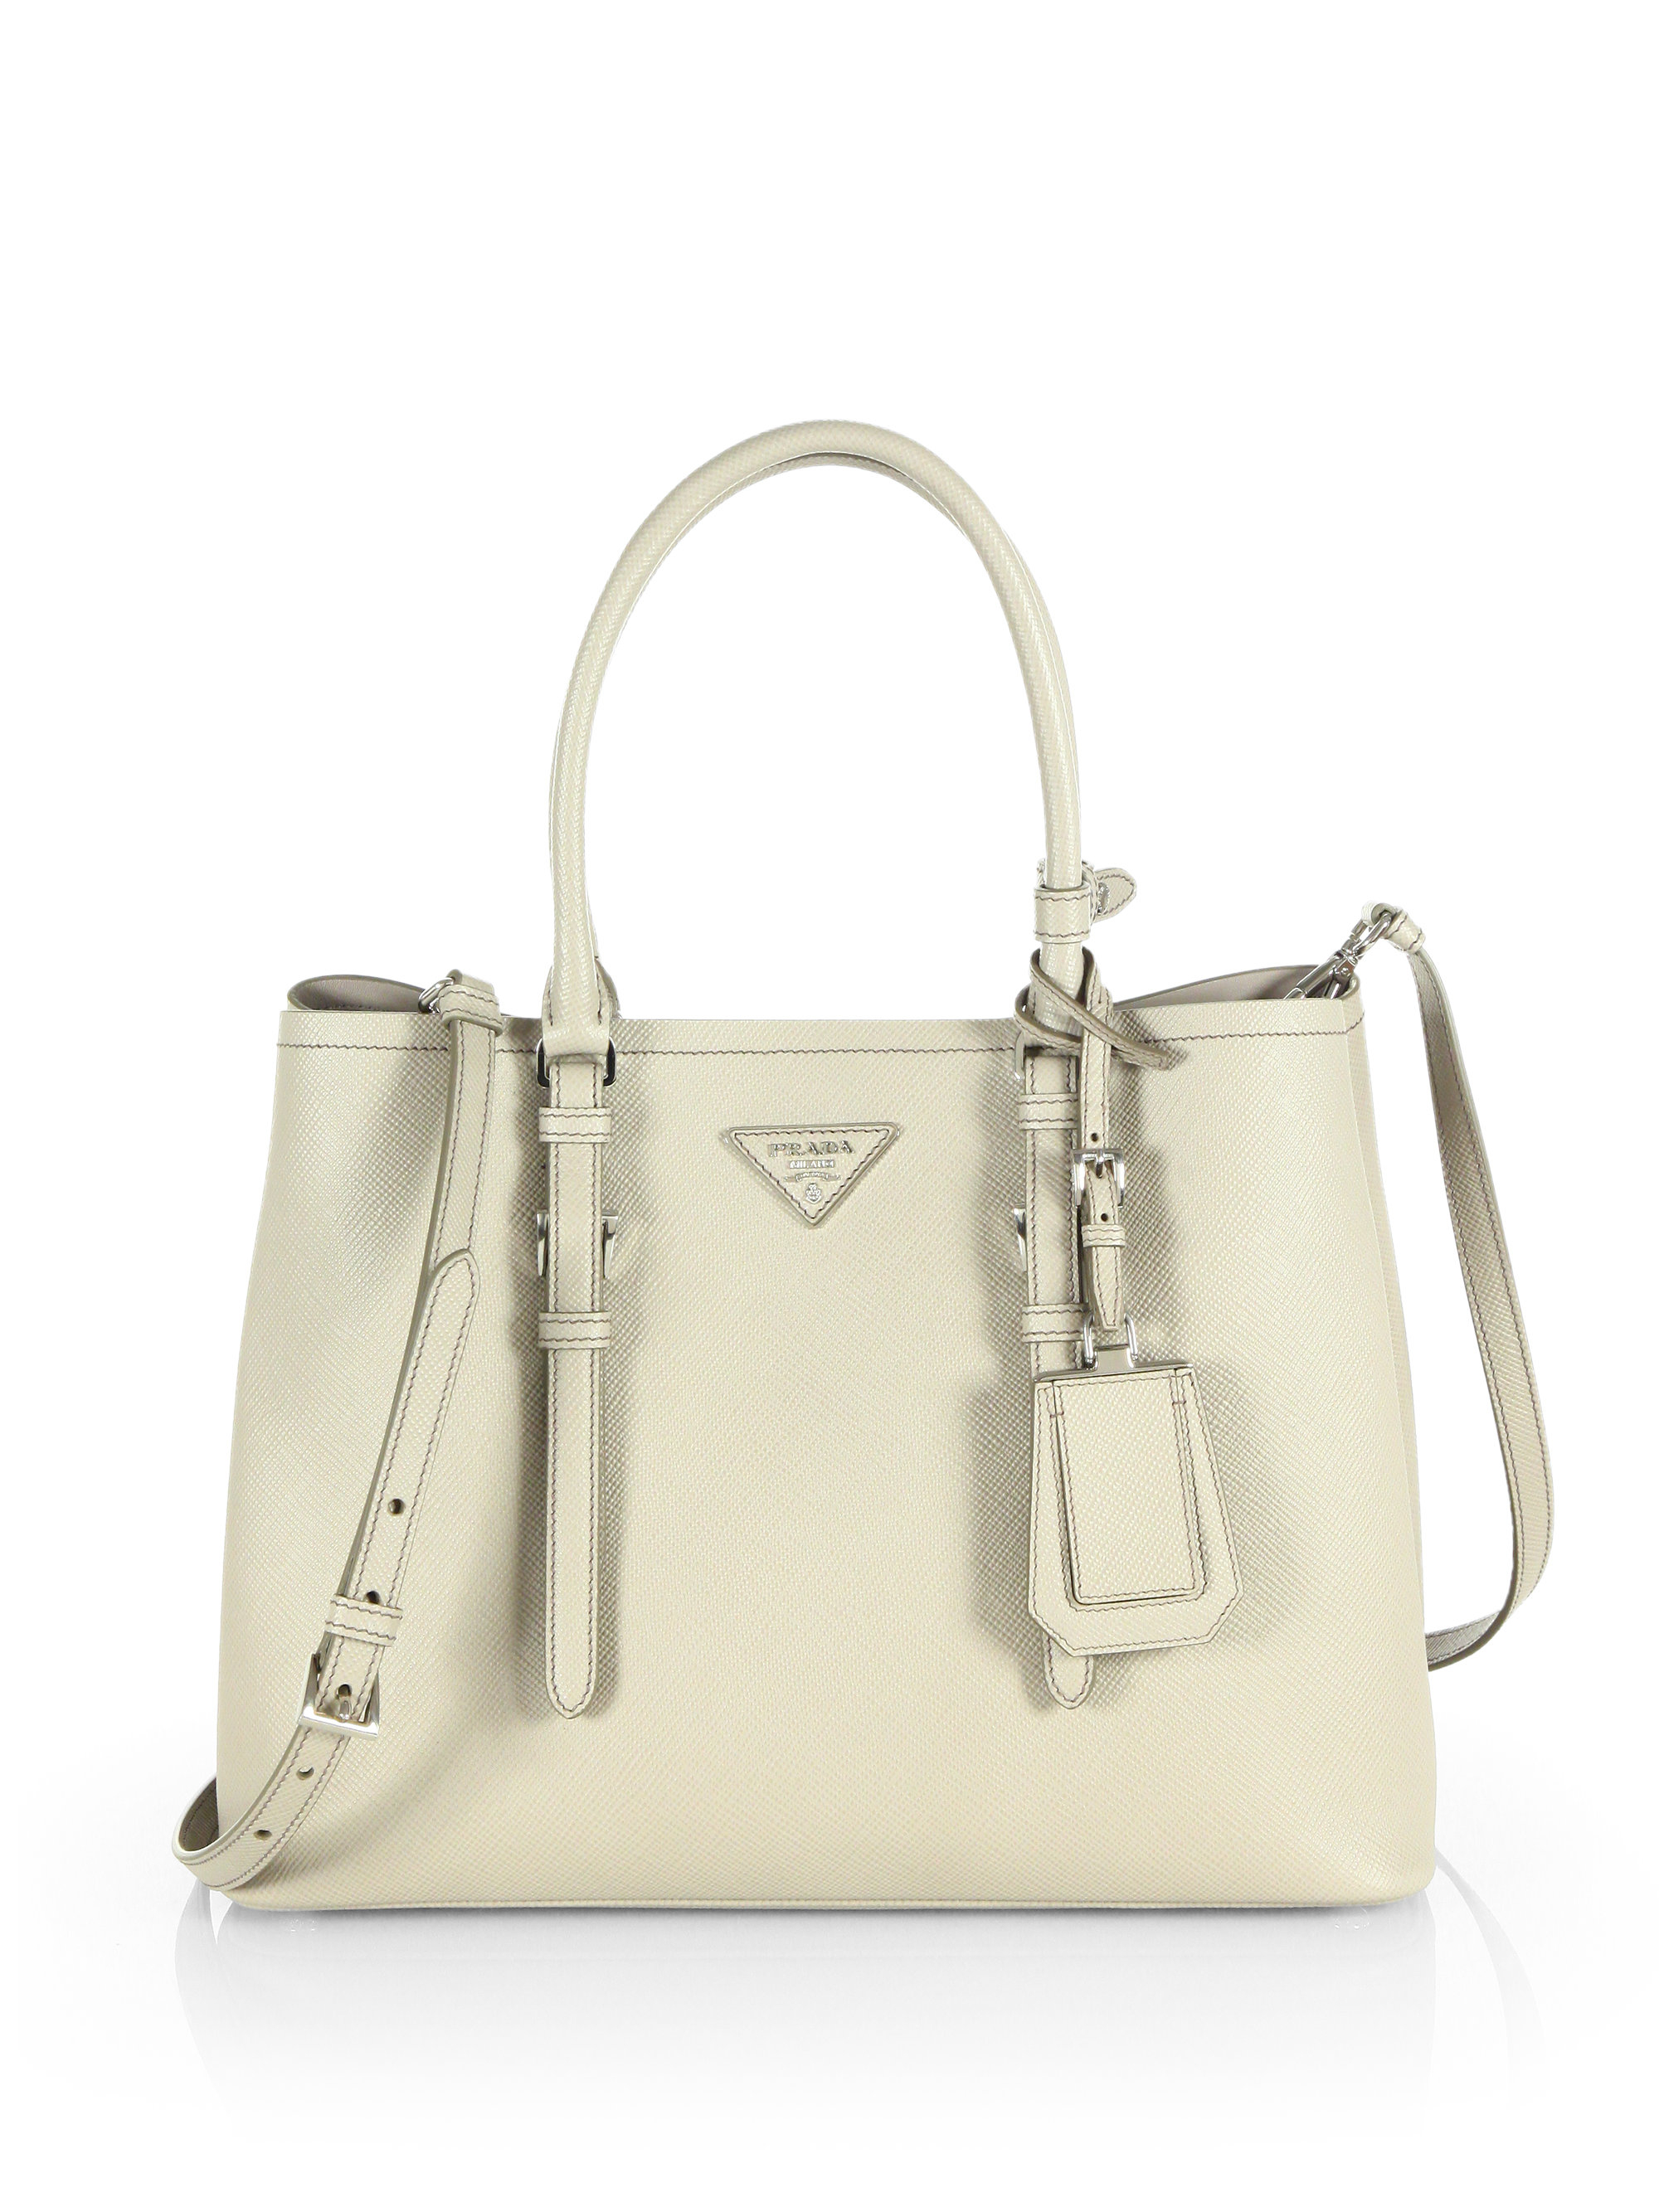 51d2a41c1 Prada White Saffiano Leather Convertible Mini Shoulder Bag in .